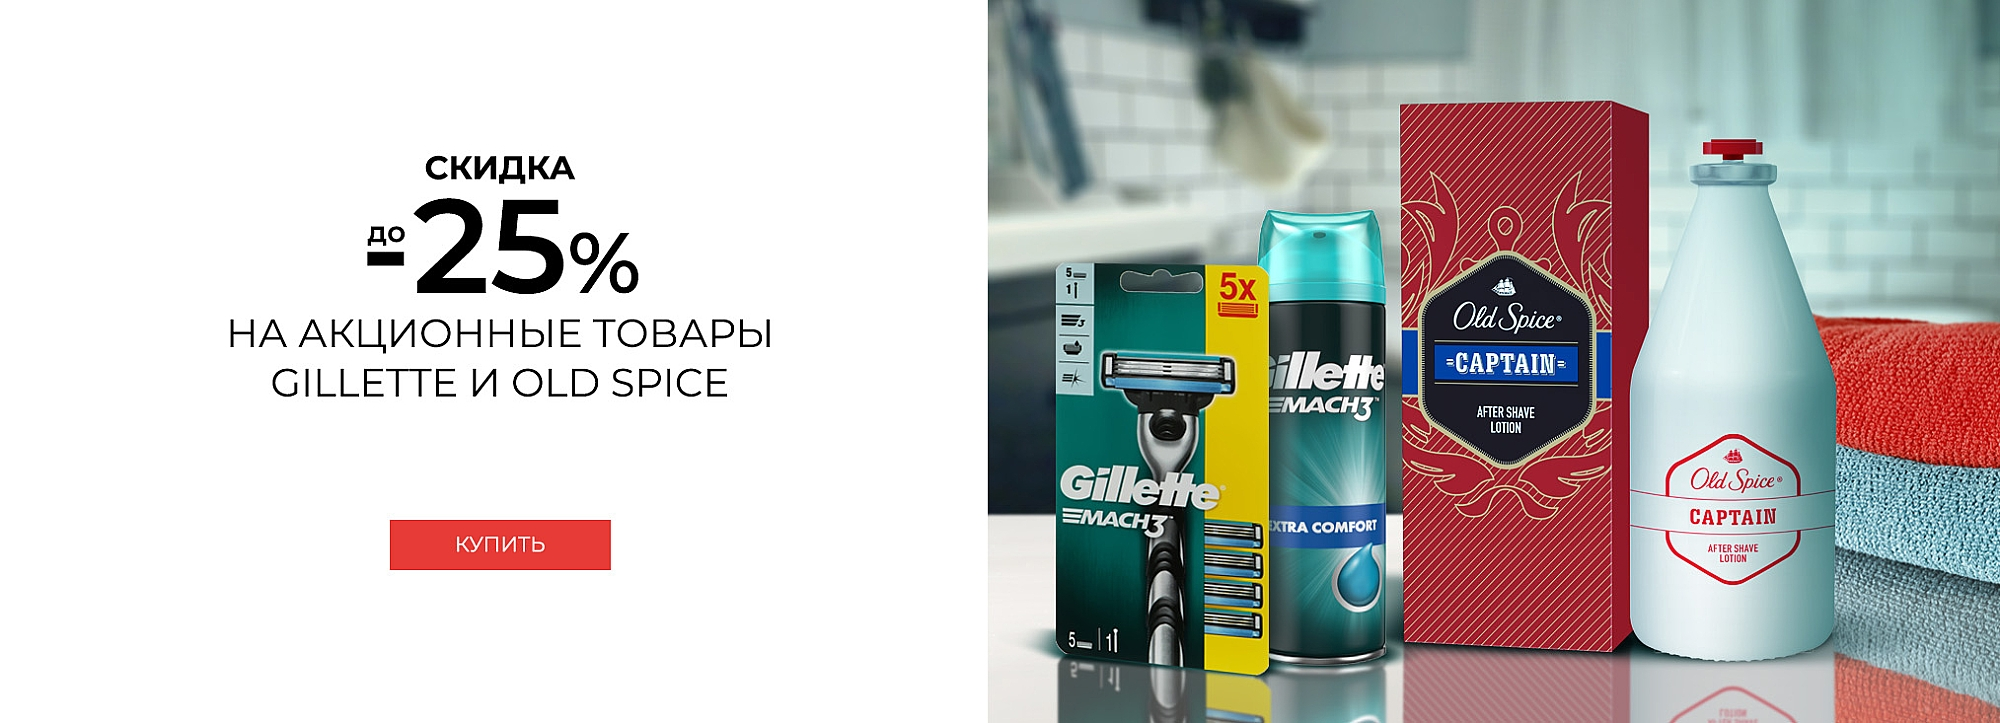 Gillette и Old Spice_20280